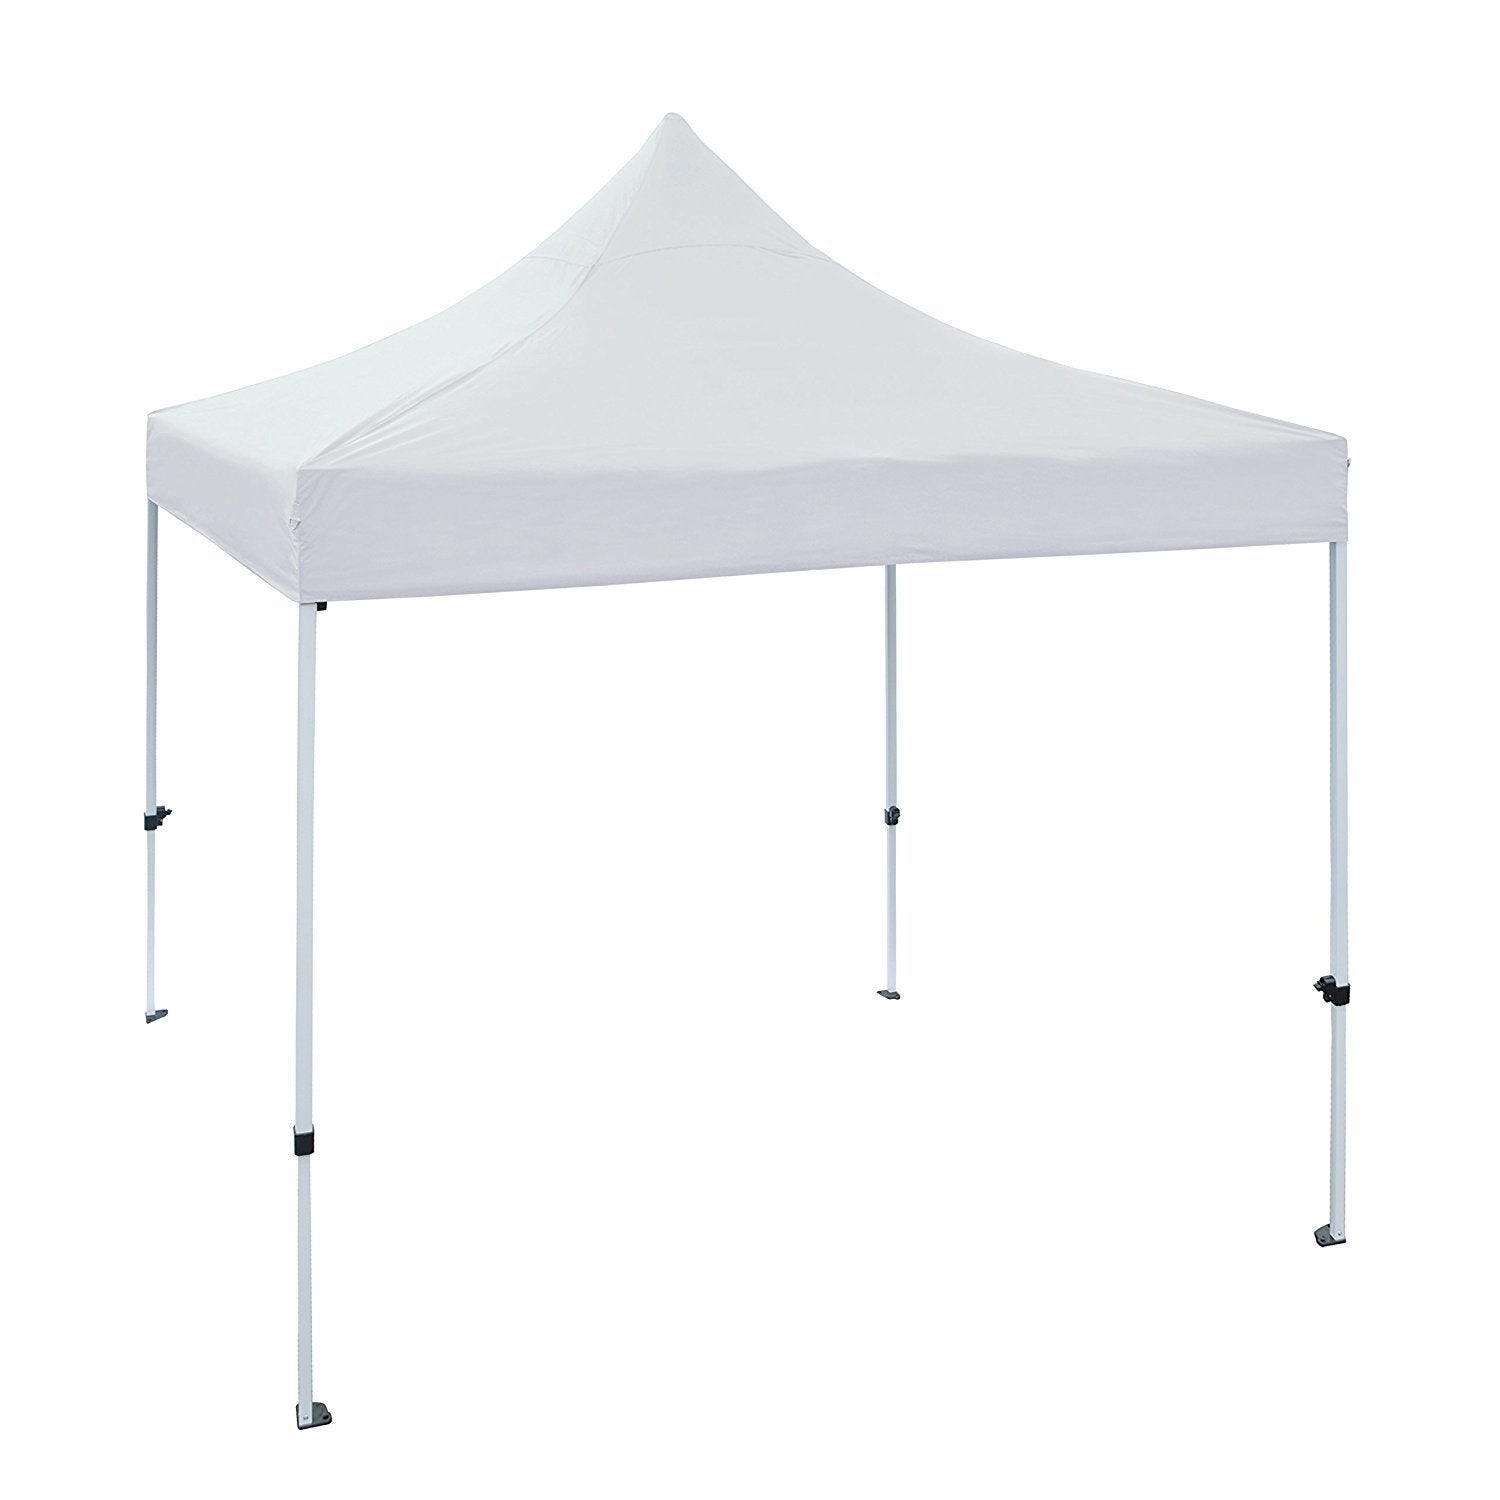 Aleko 10 X 10 ft Outdoor Party Waterproof White Gazebo Te...